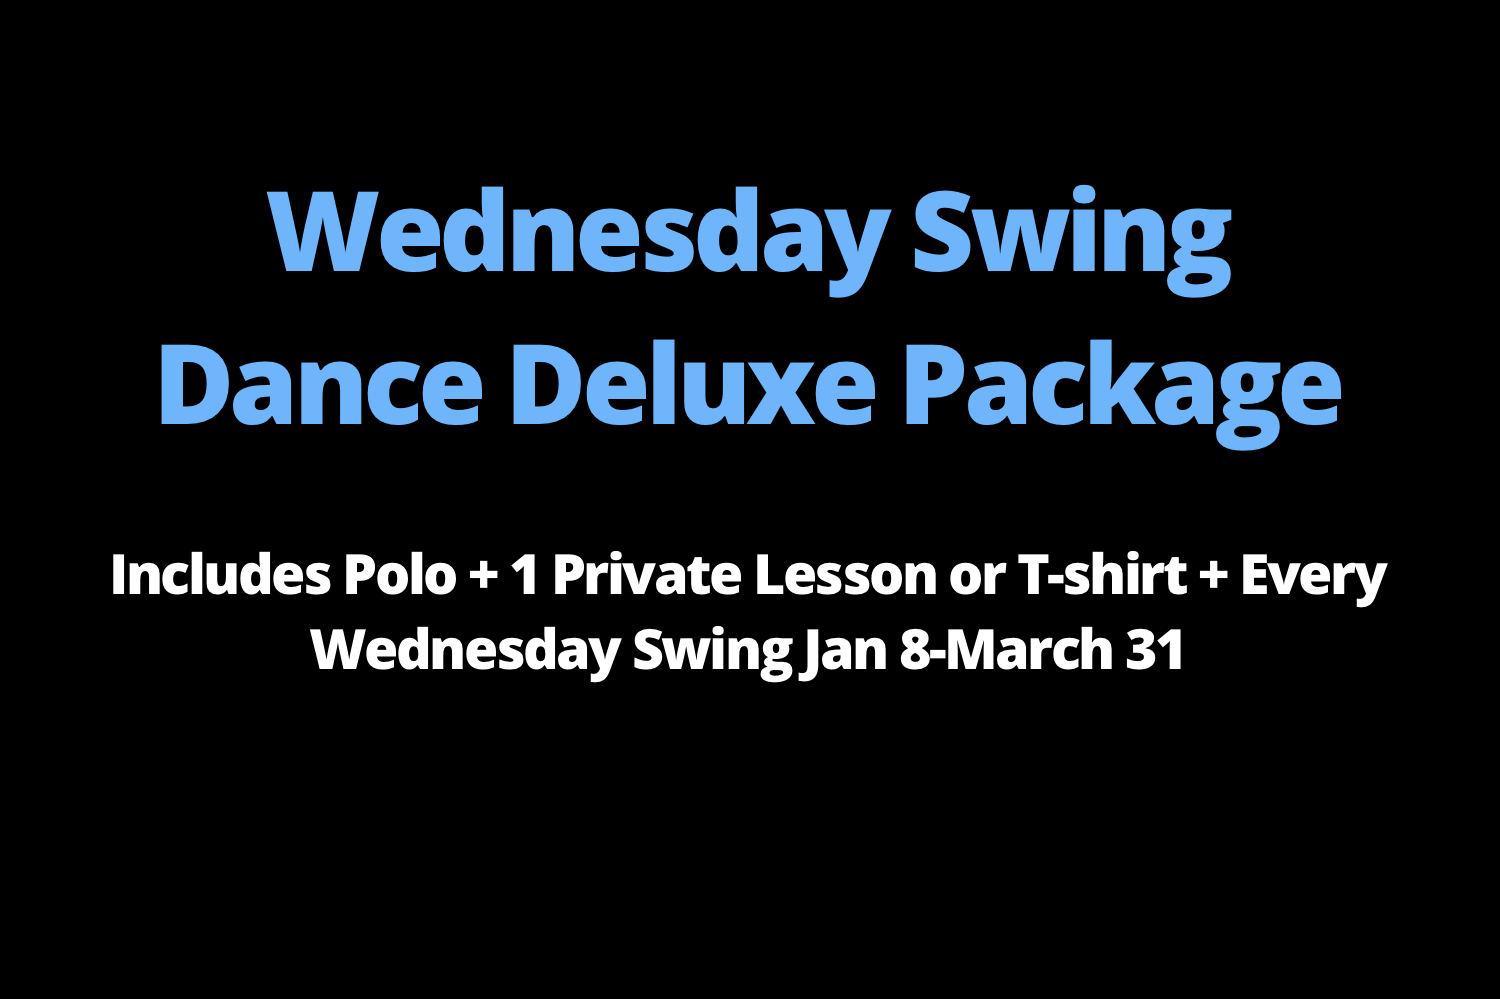 Wednesday Swing Deluxe Package